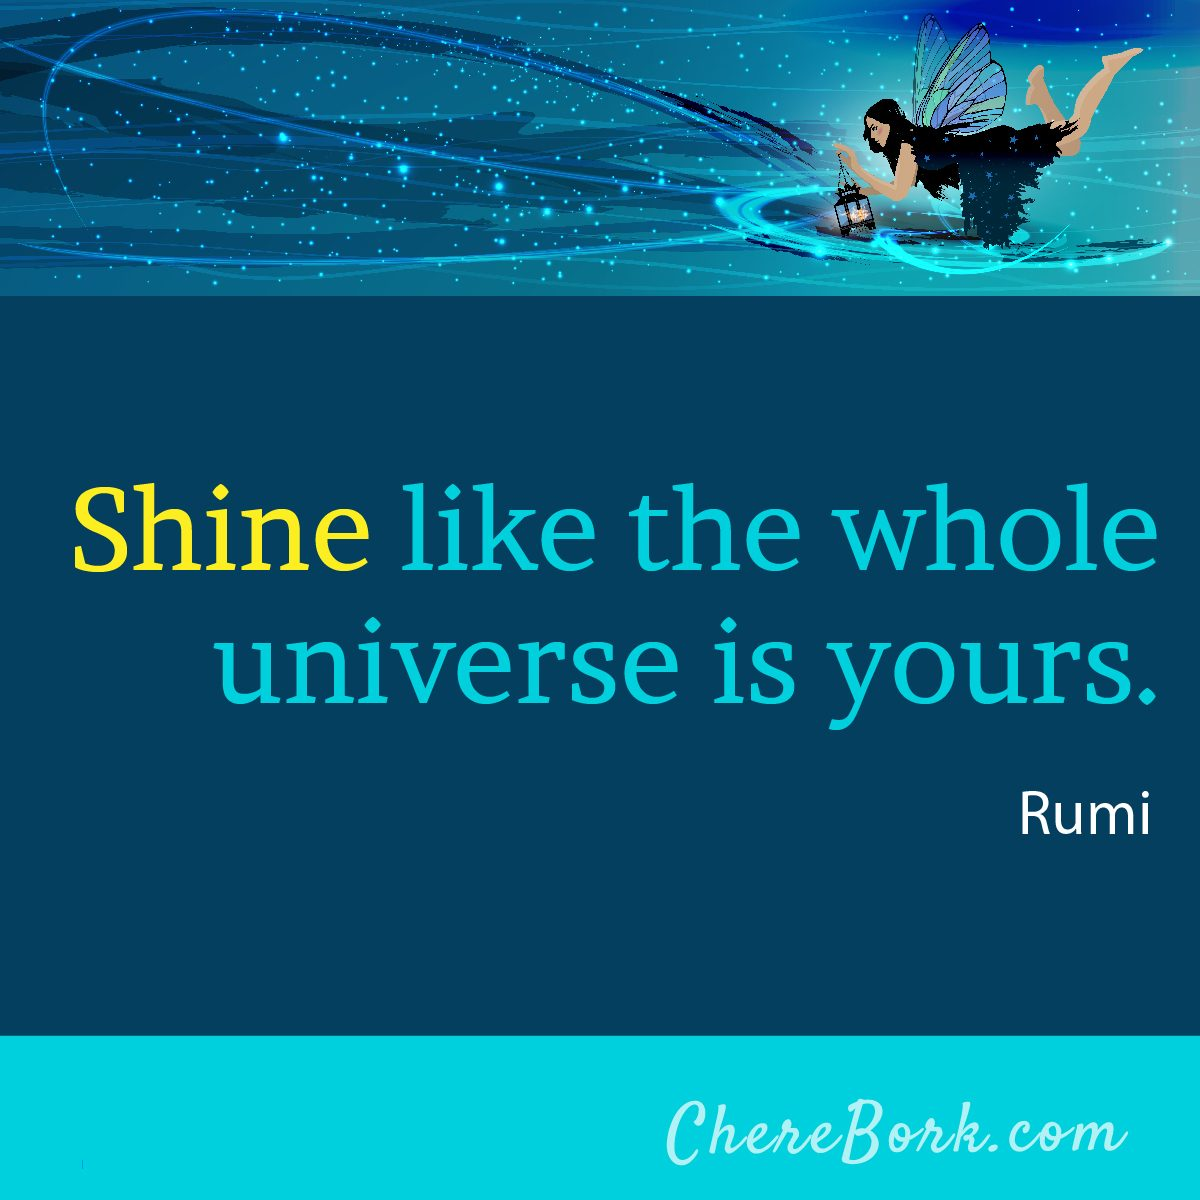 Shine like the whole universe is yours. -Rumi